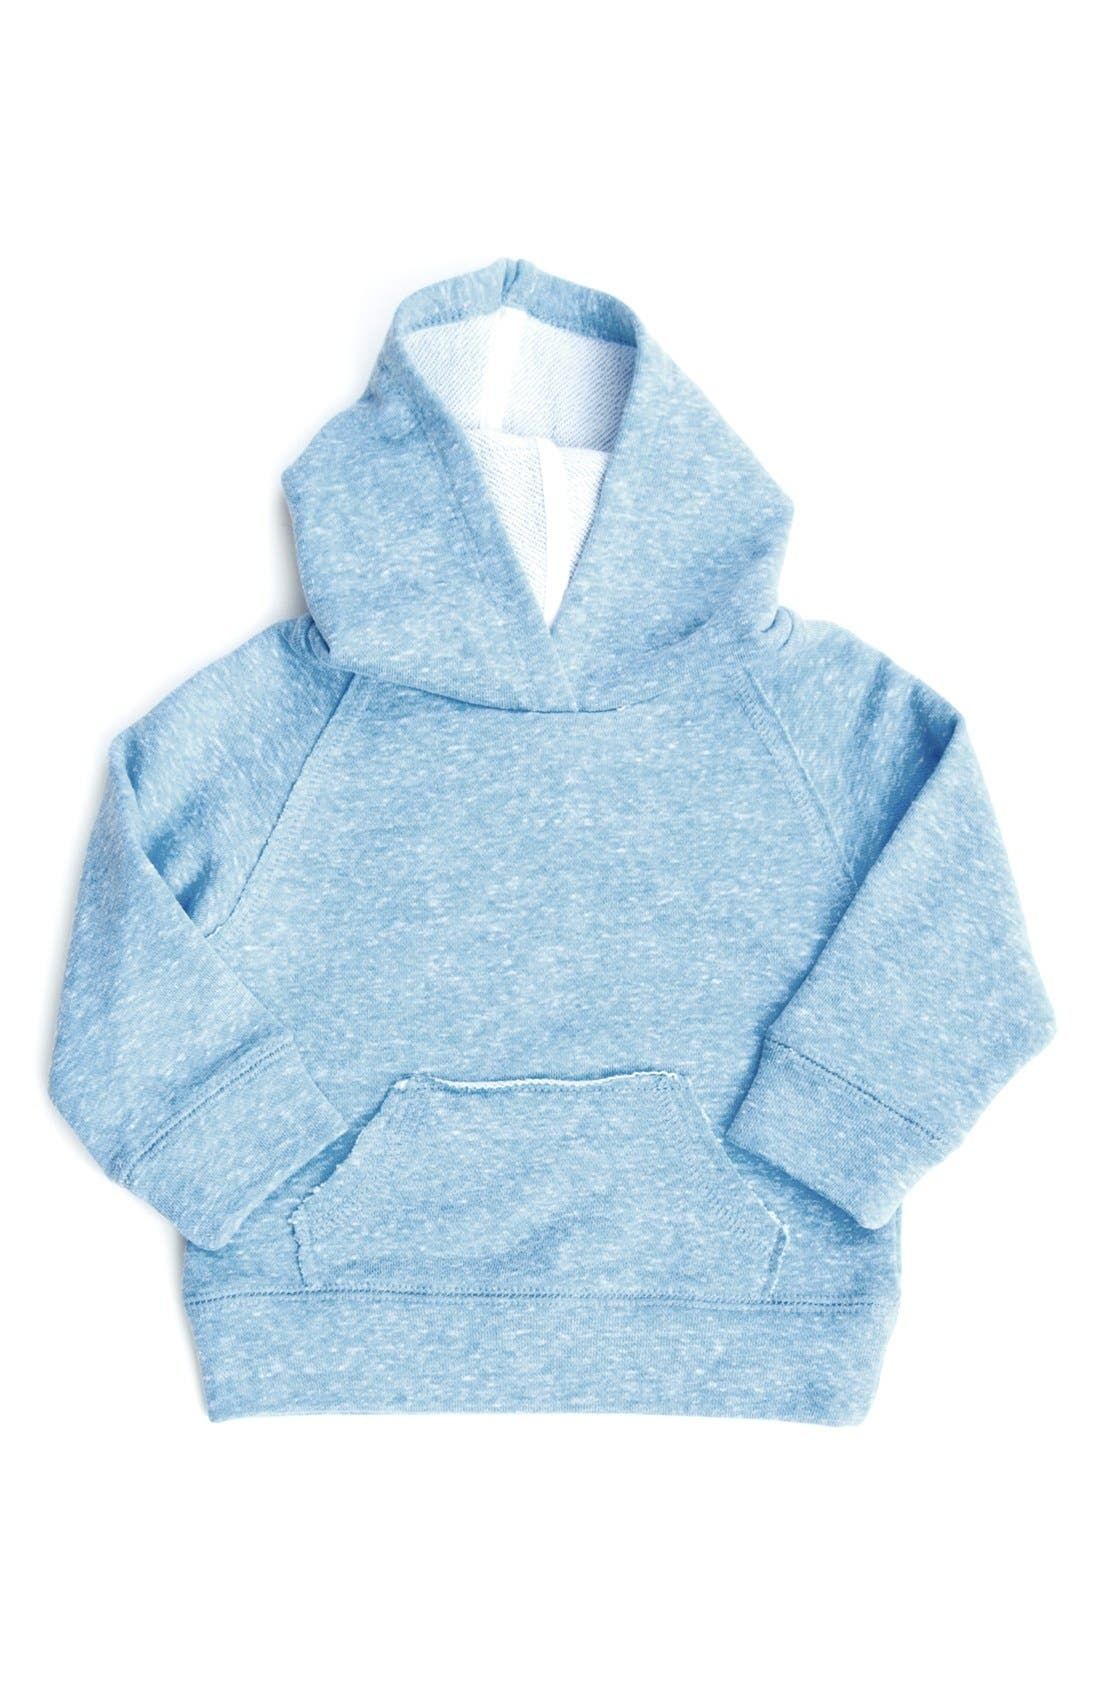 Alternate Image 1 Selected - Peek 'Logan' French Pullover Hoodie (Baby Boys)